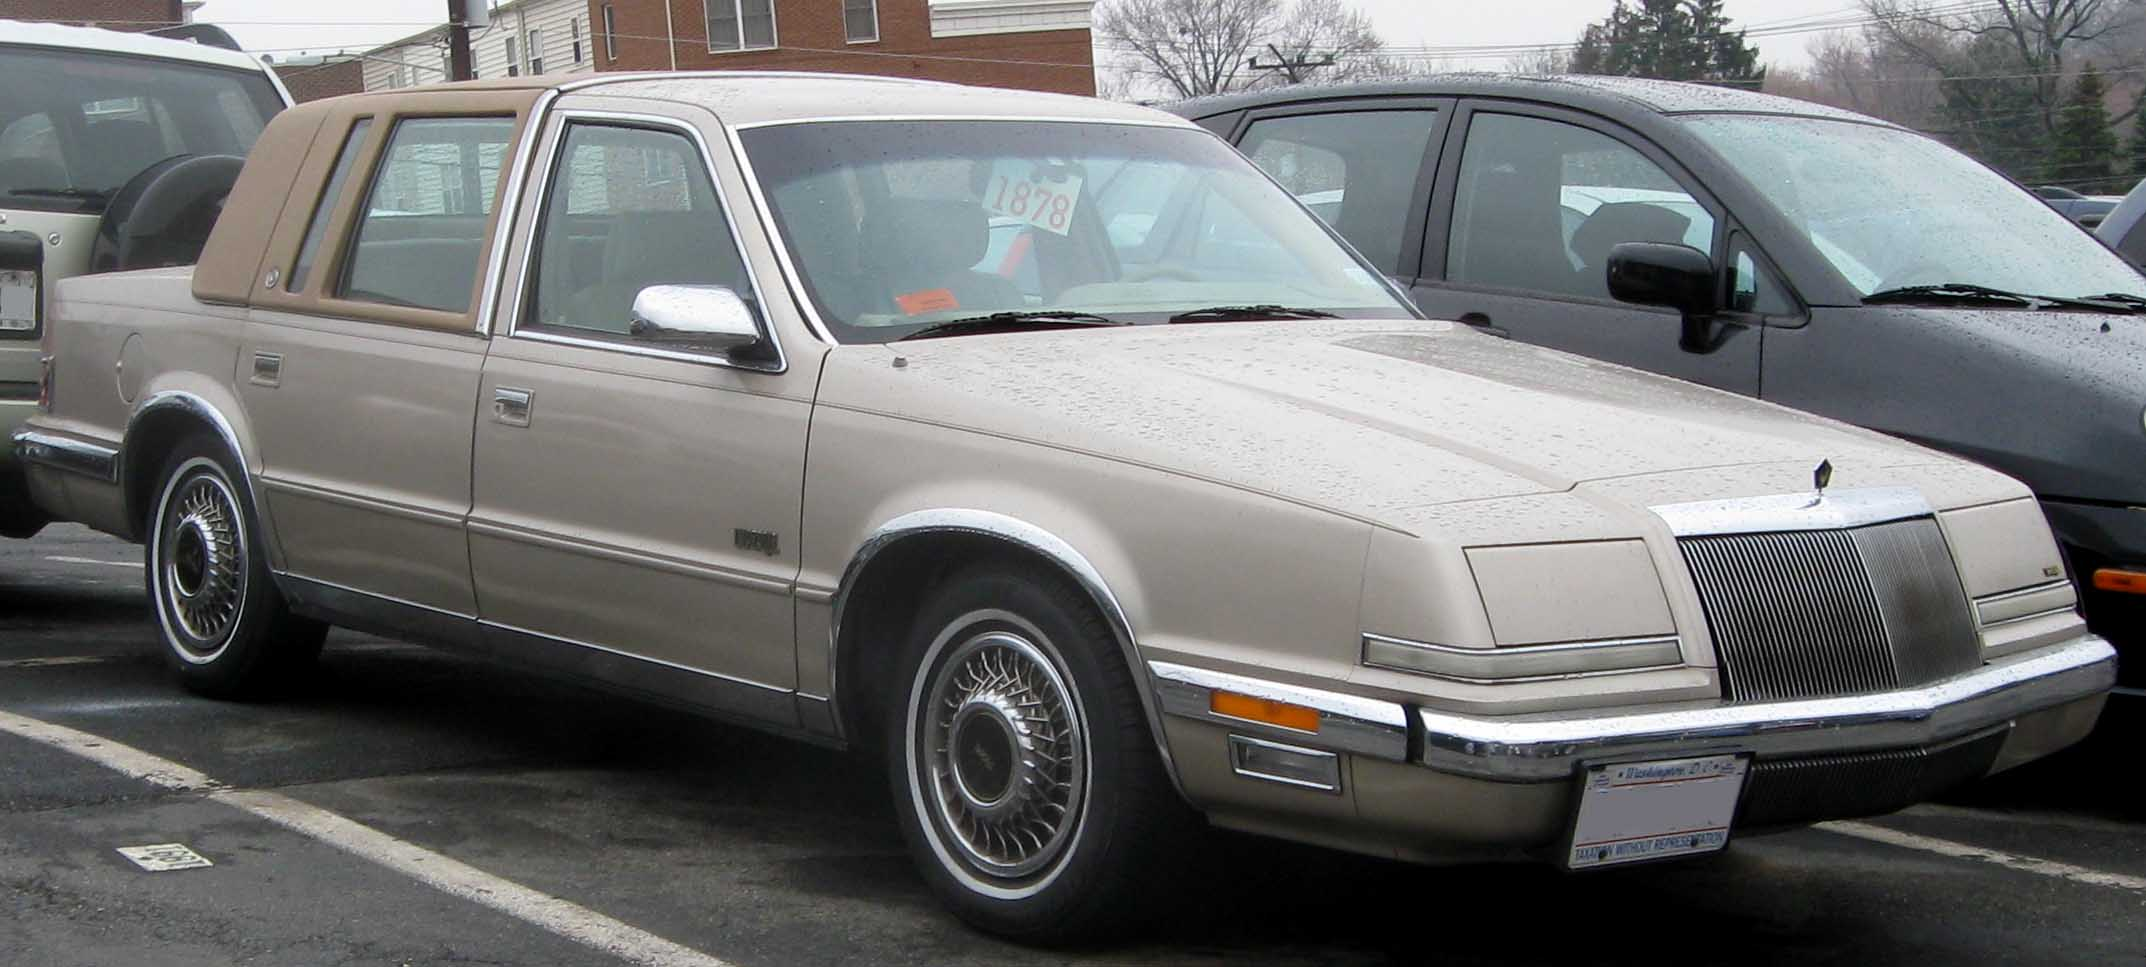 1993 Chrysler Imperial #2